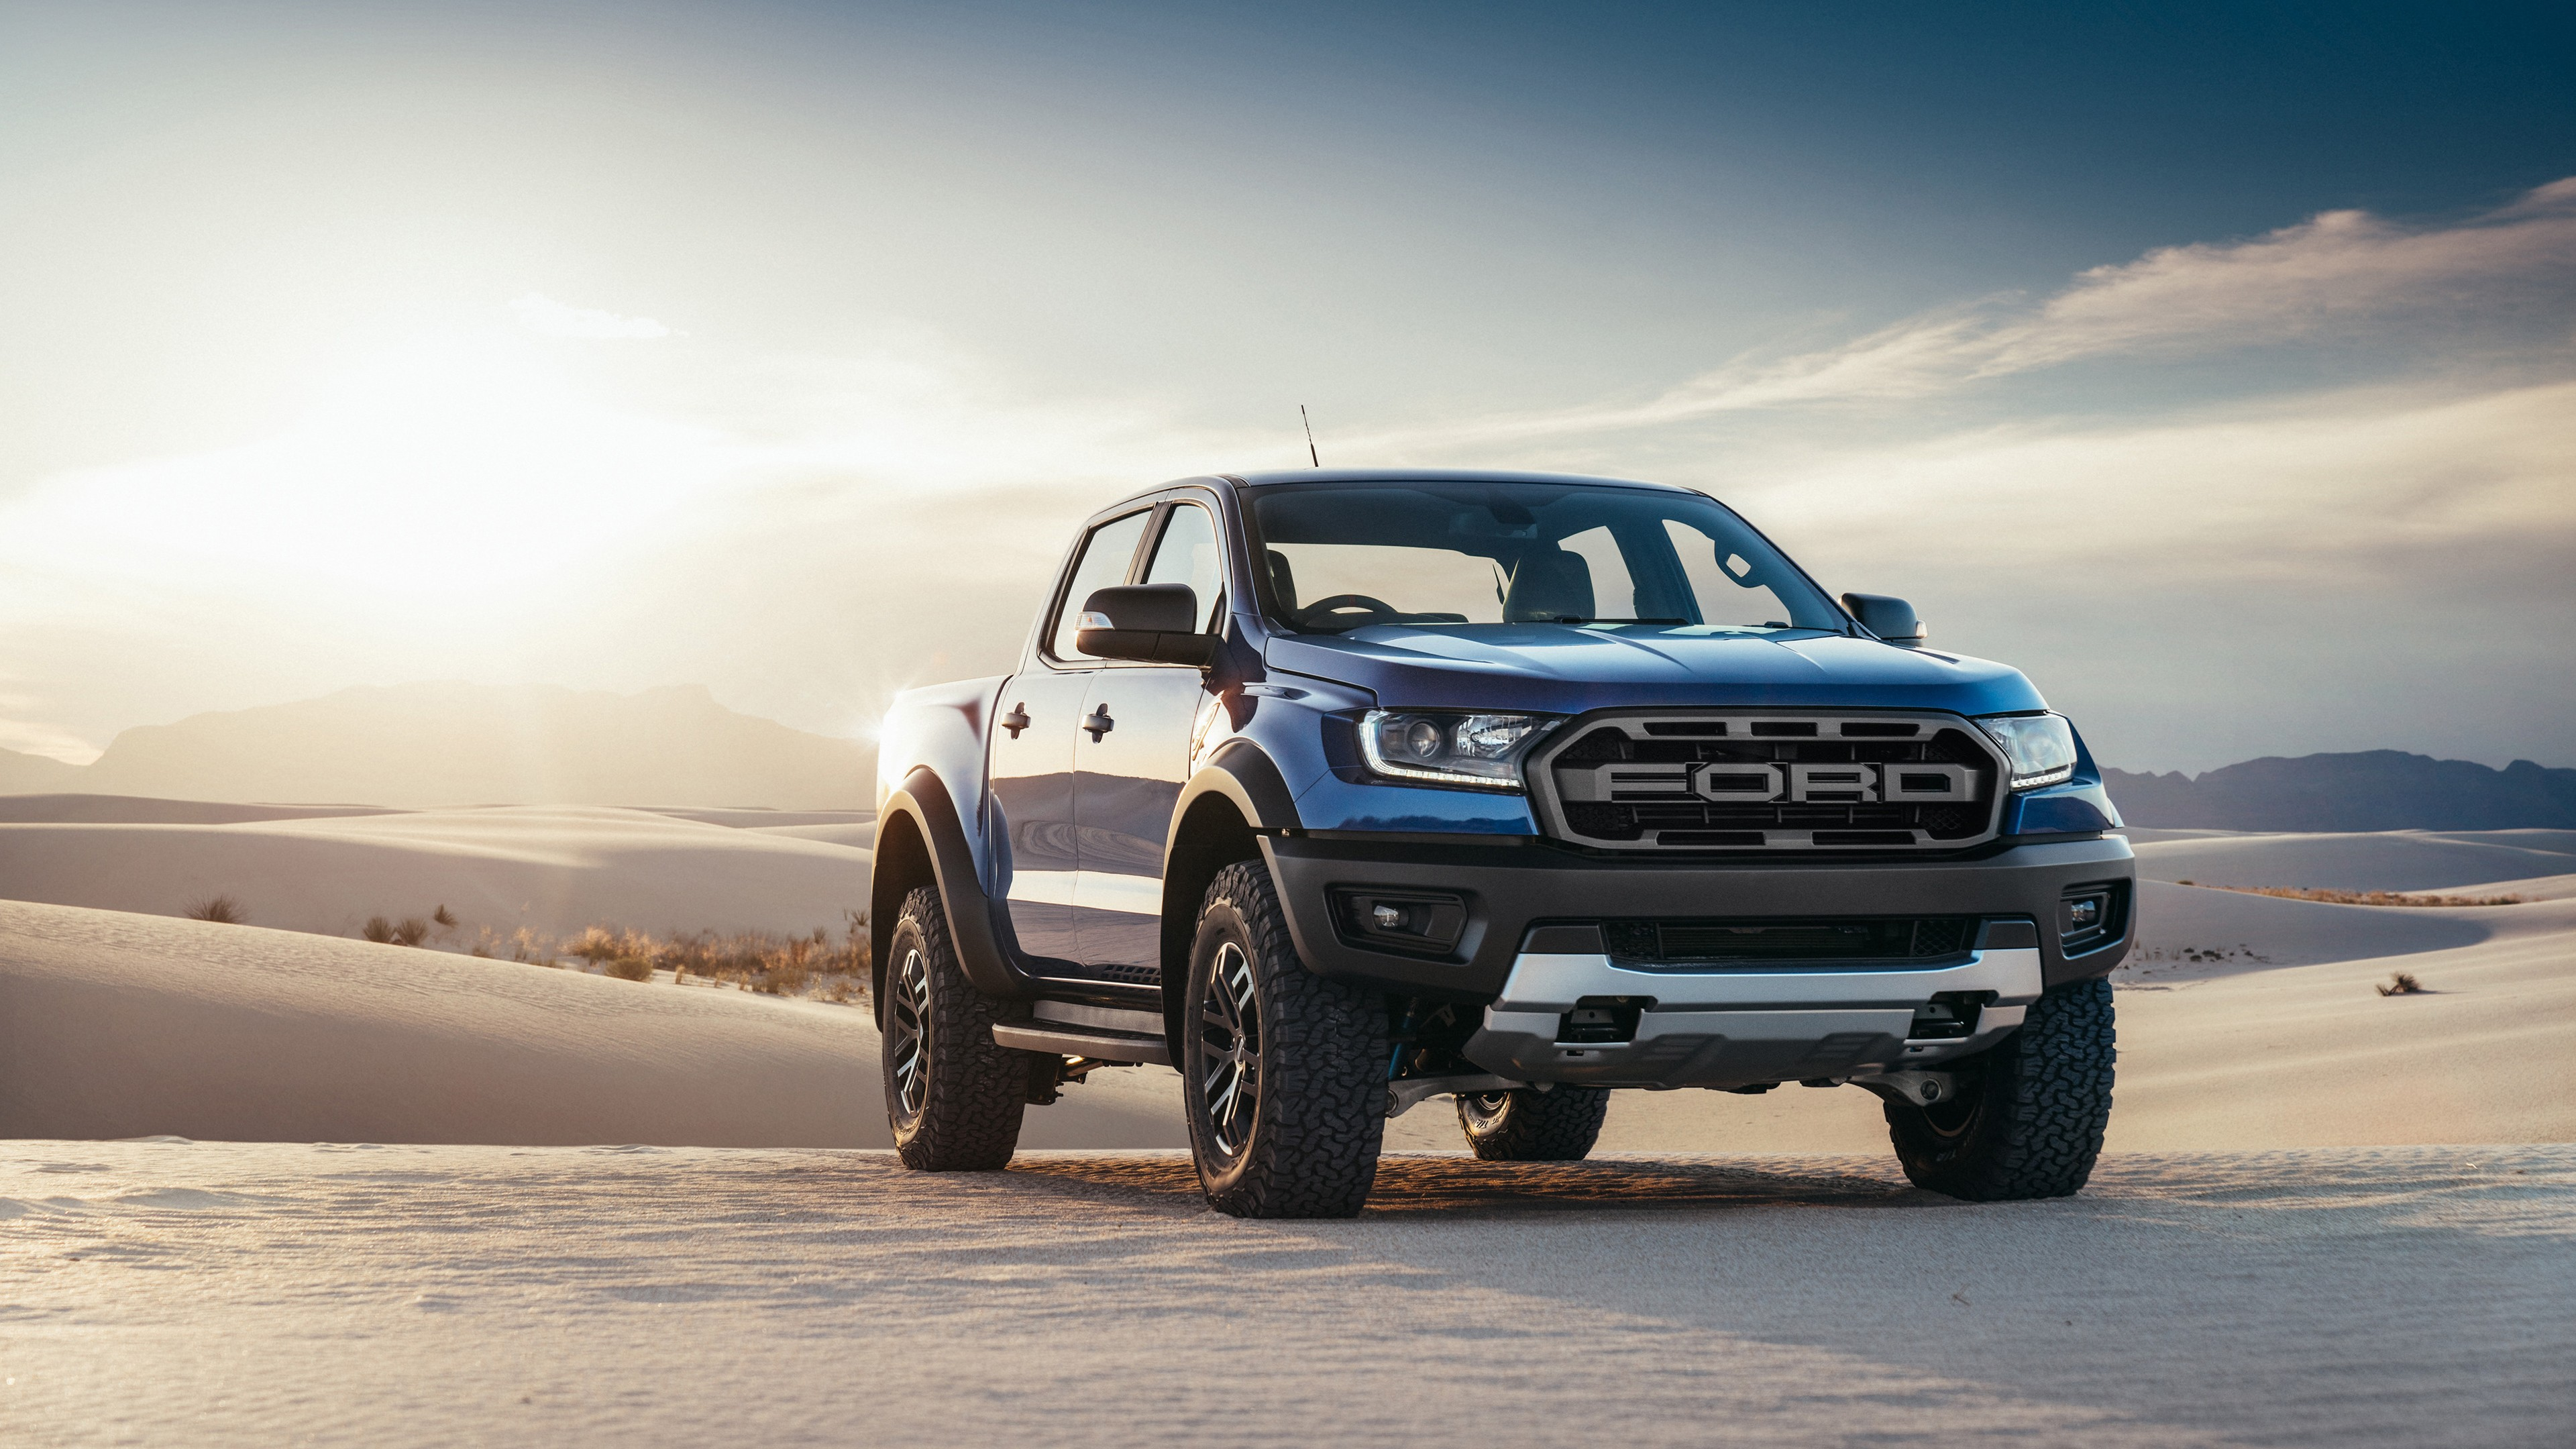 Ford Raptor 2018 >> 2019 Ford Ranger Raptor 4K Wallpaper | HD Car Wallpapers ...